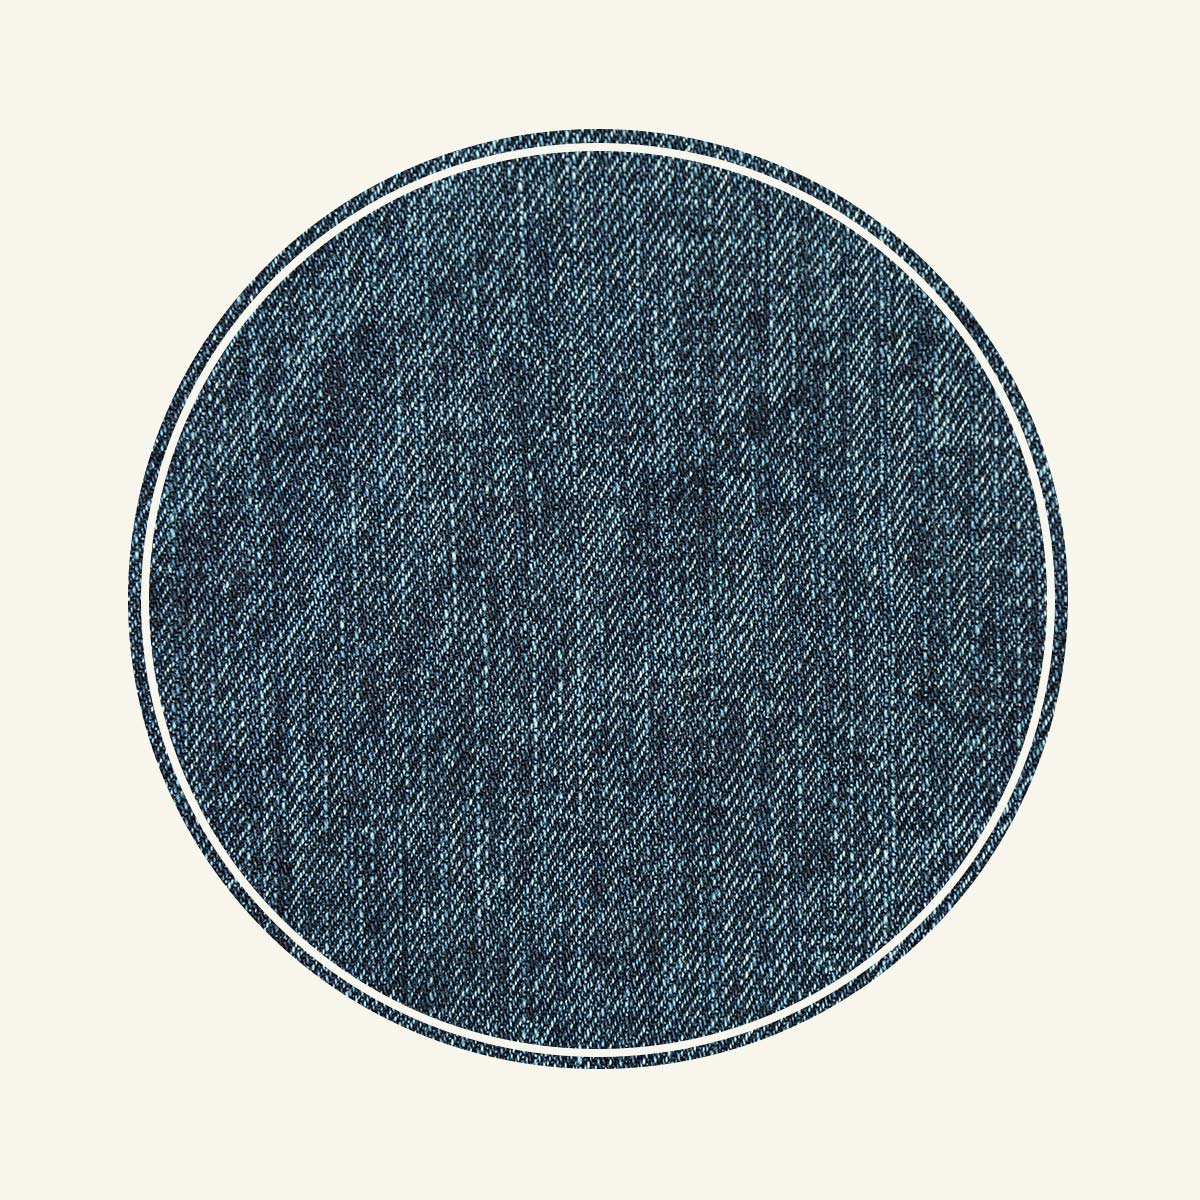 Denim swatch.